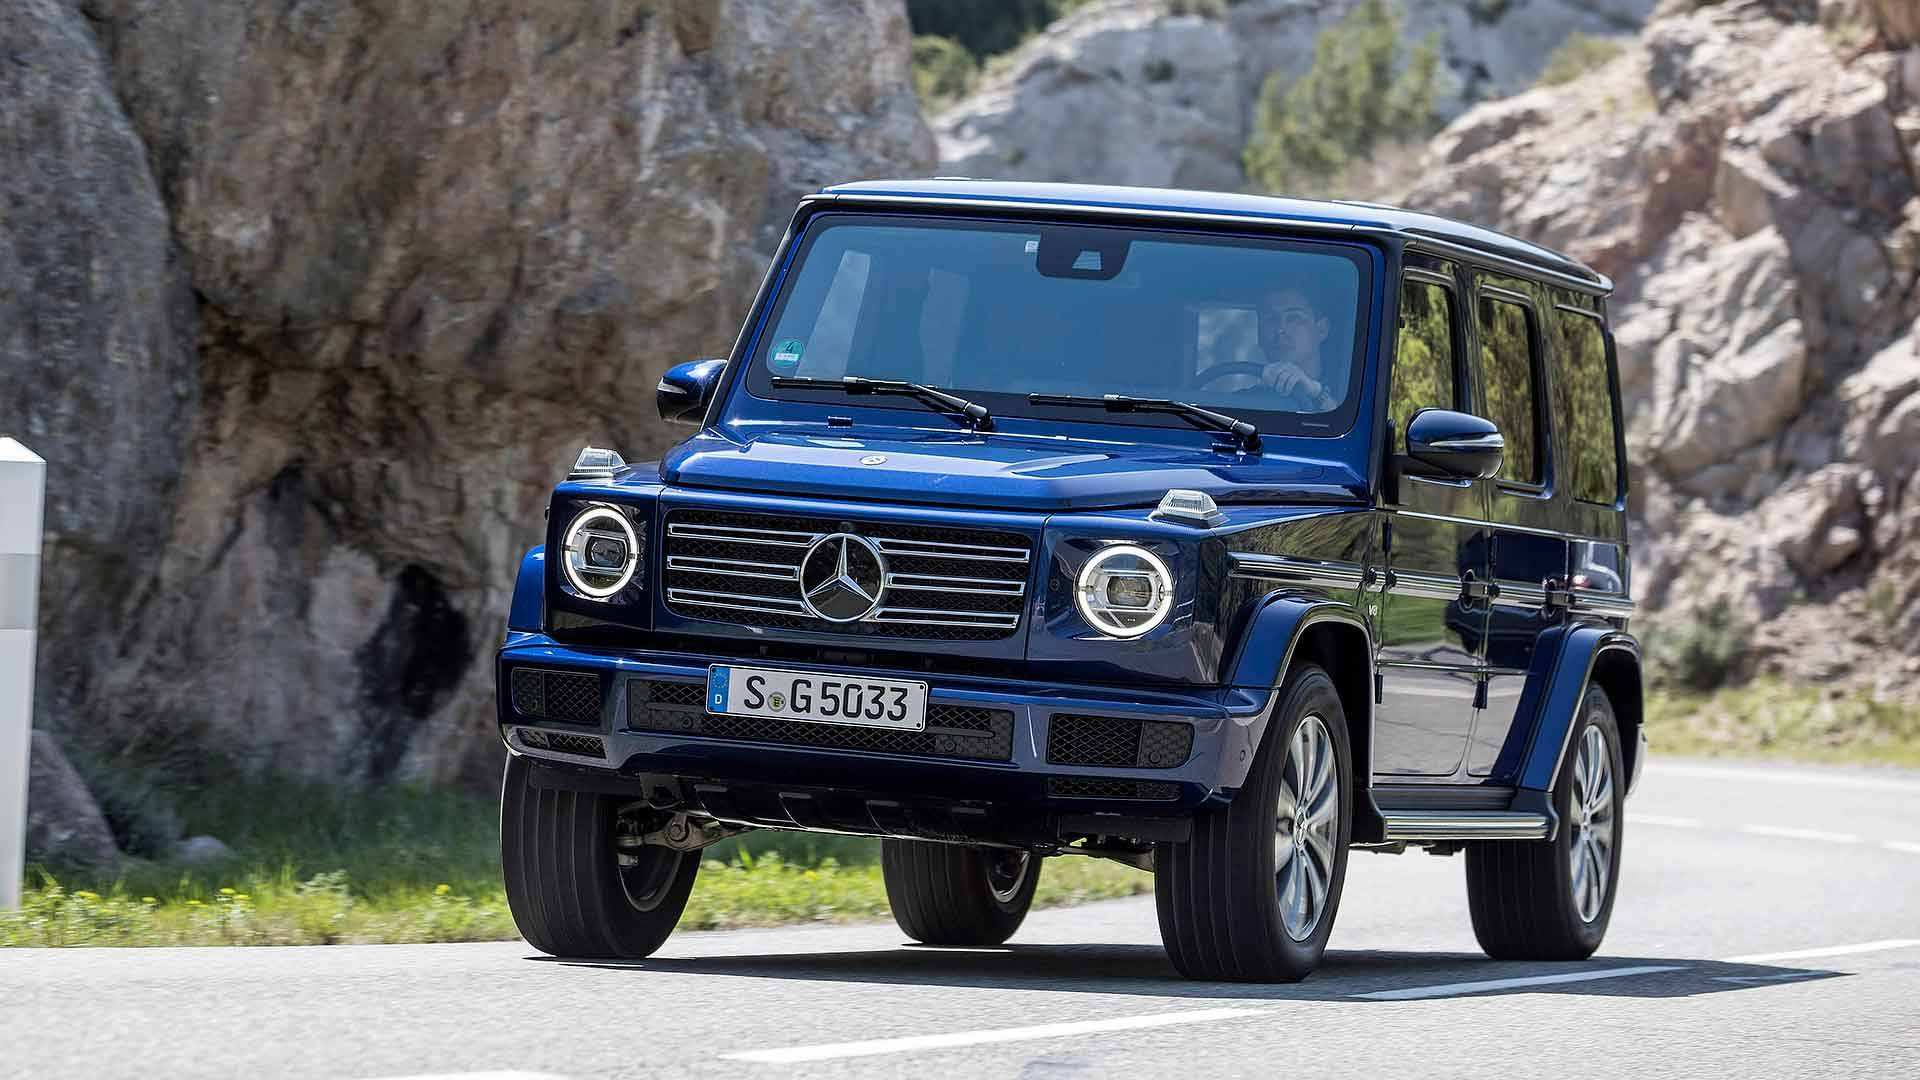 95 Great G550 Mercedes 2020 Exterior and Interior by G550 Mercedes 2020